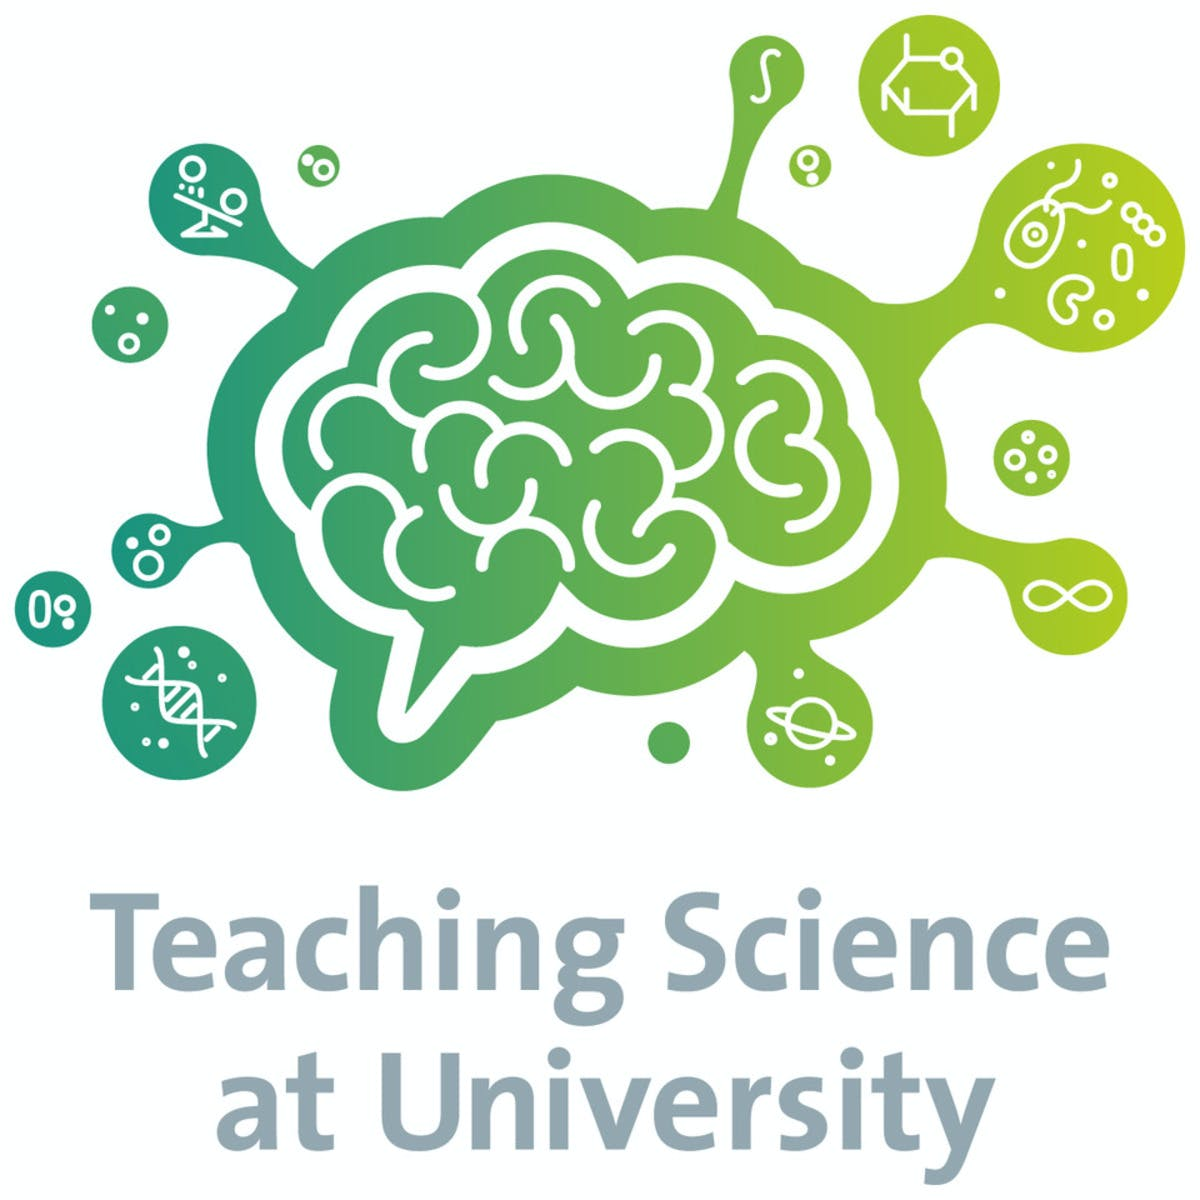 Teaching Science at University